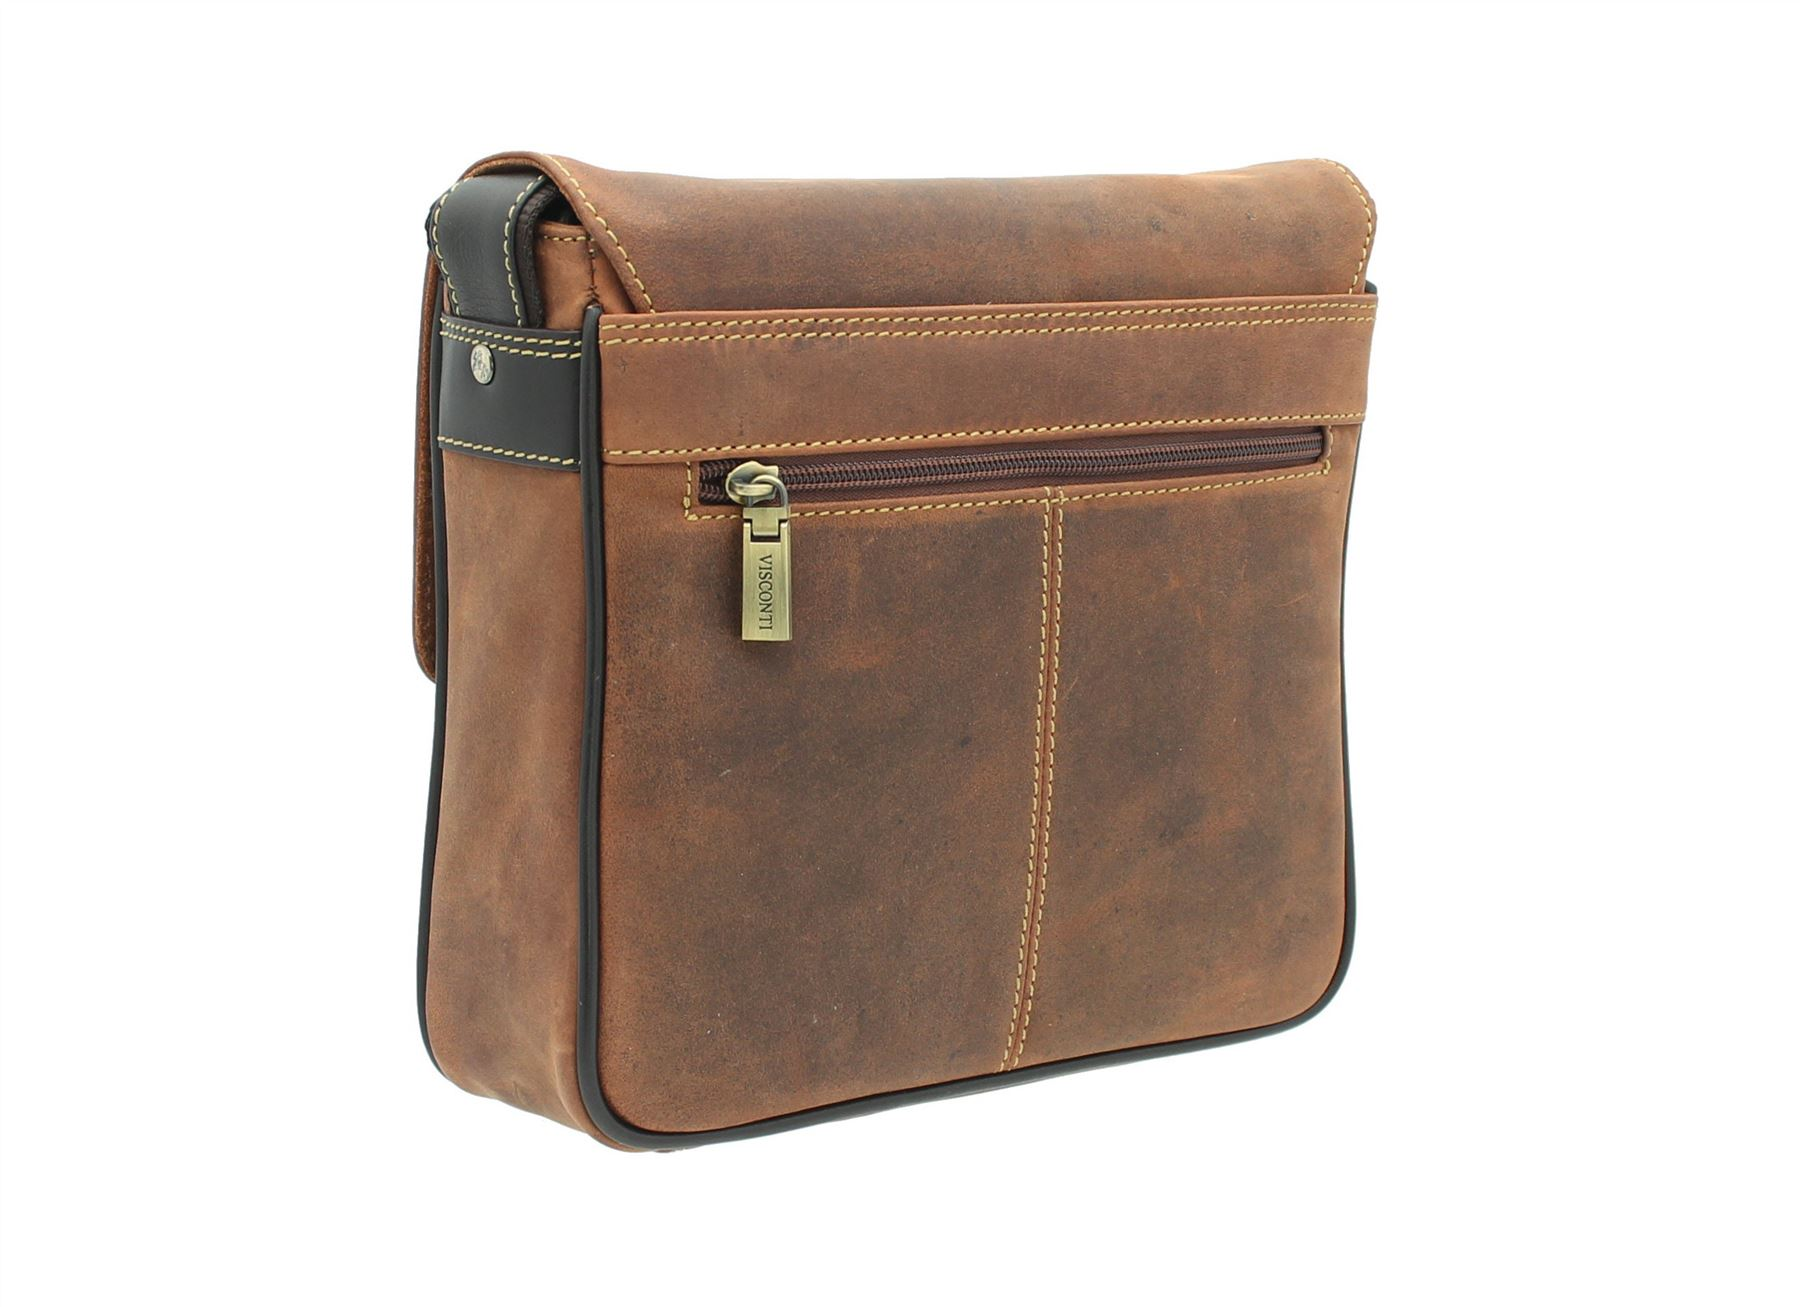 Visconti Leather Messenger Bag Style 16012